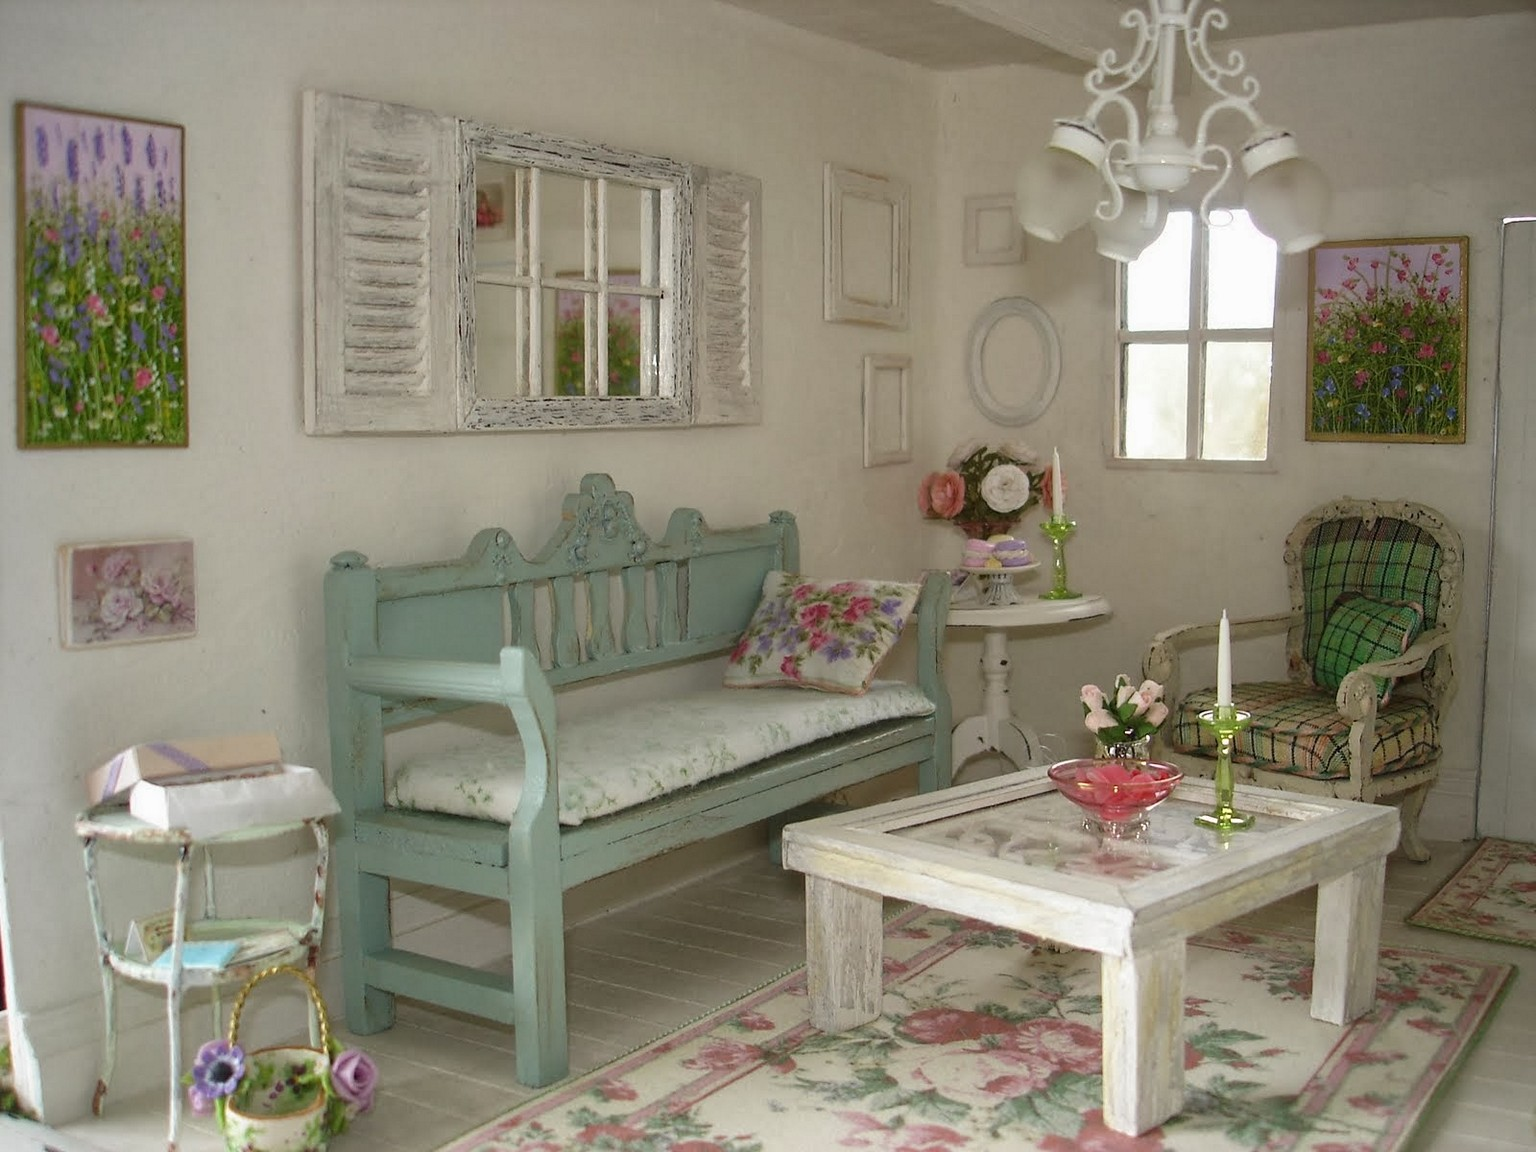 Porch-inspired shabby chic living room.  Source: backtobasicliving.com